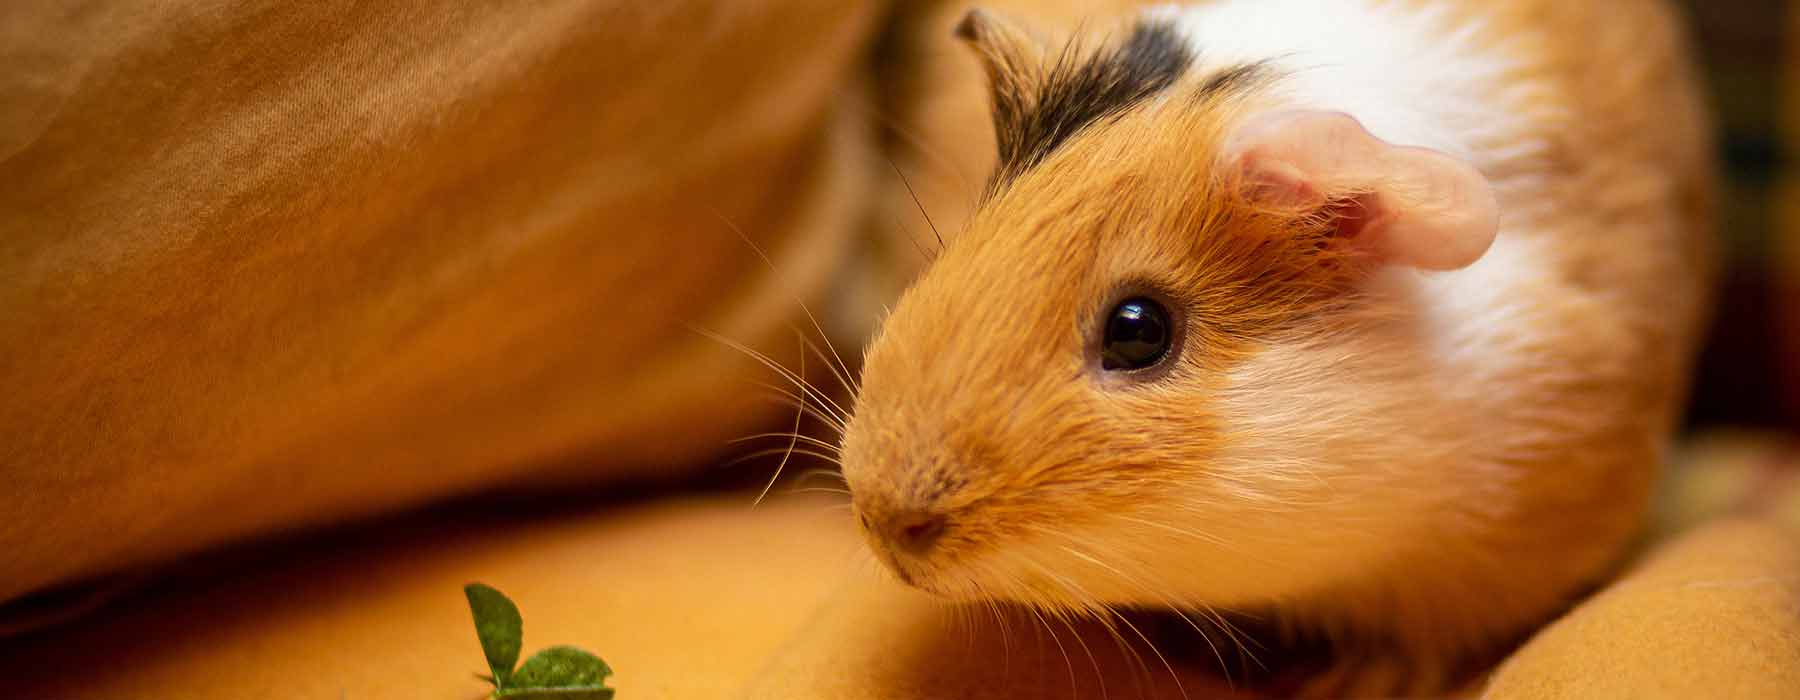 small ginger and white guinea pig